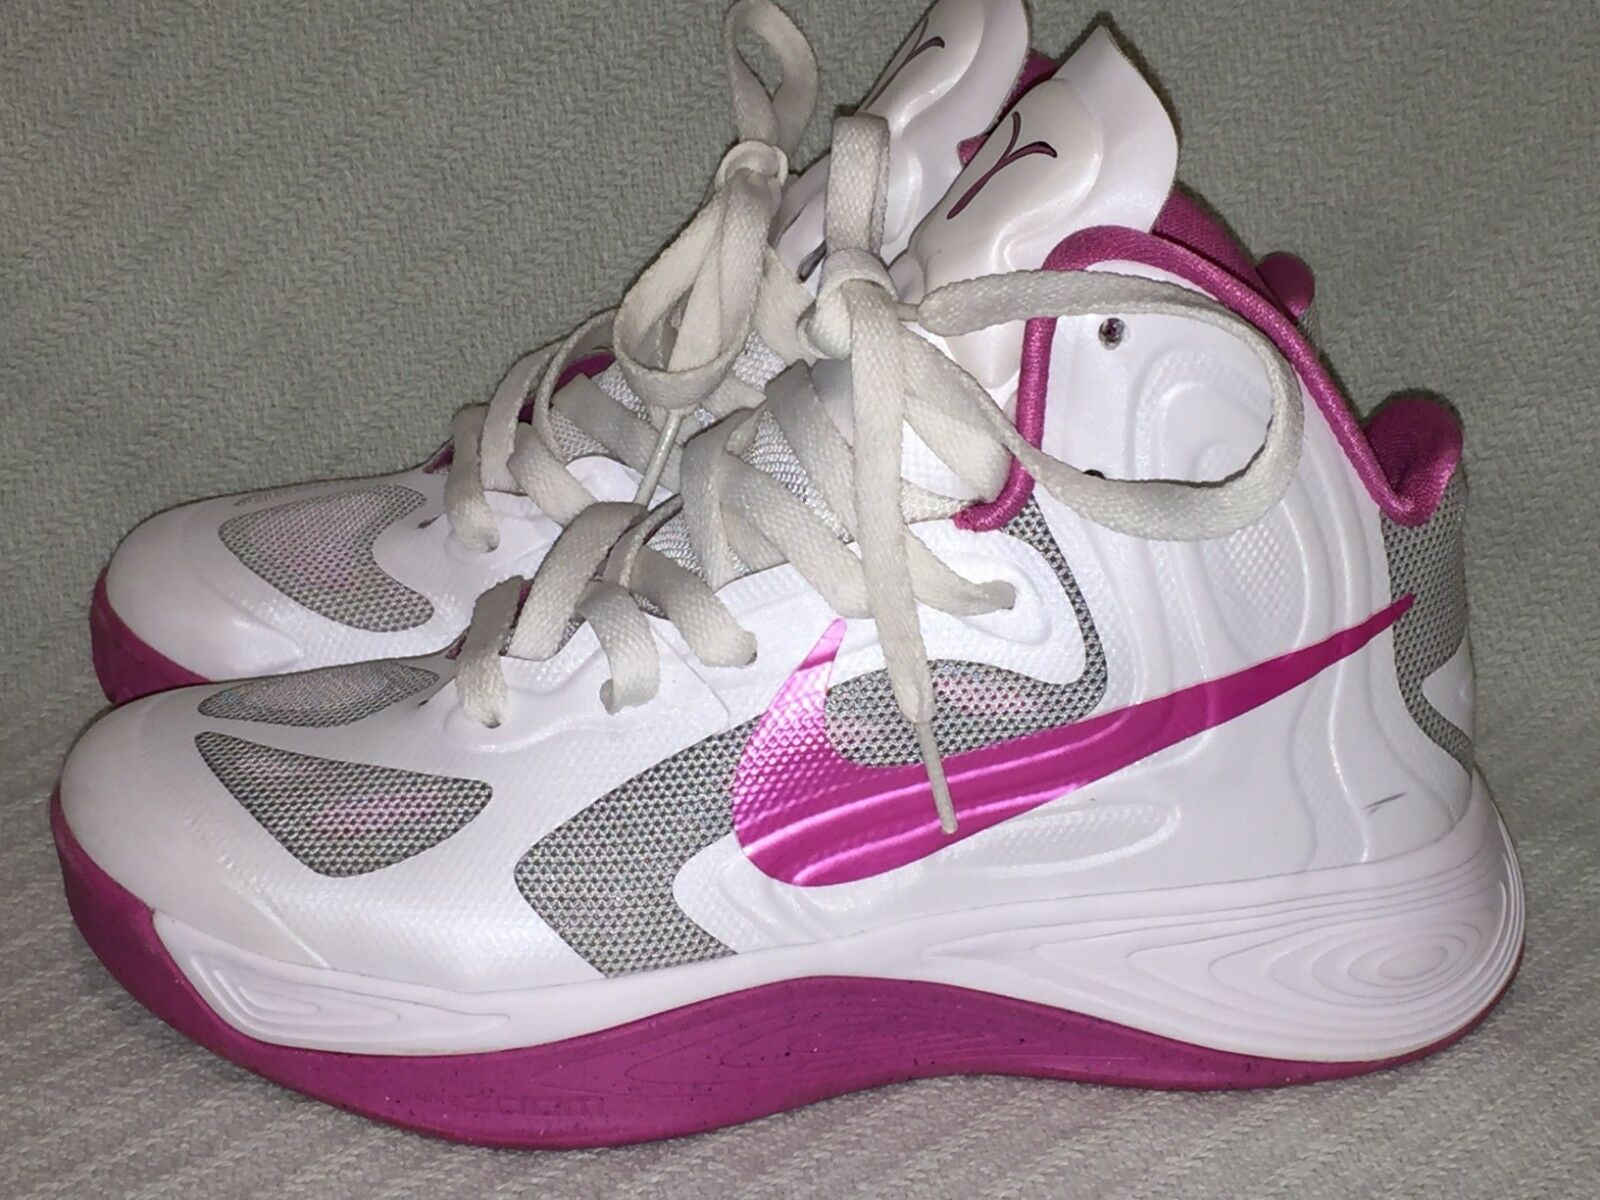 Ladies Size Size Size 6 RARE Breast Cancer Ribbon Nike Hyperfuse White Pink 525021-101 e8a2cd